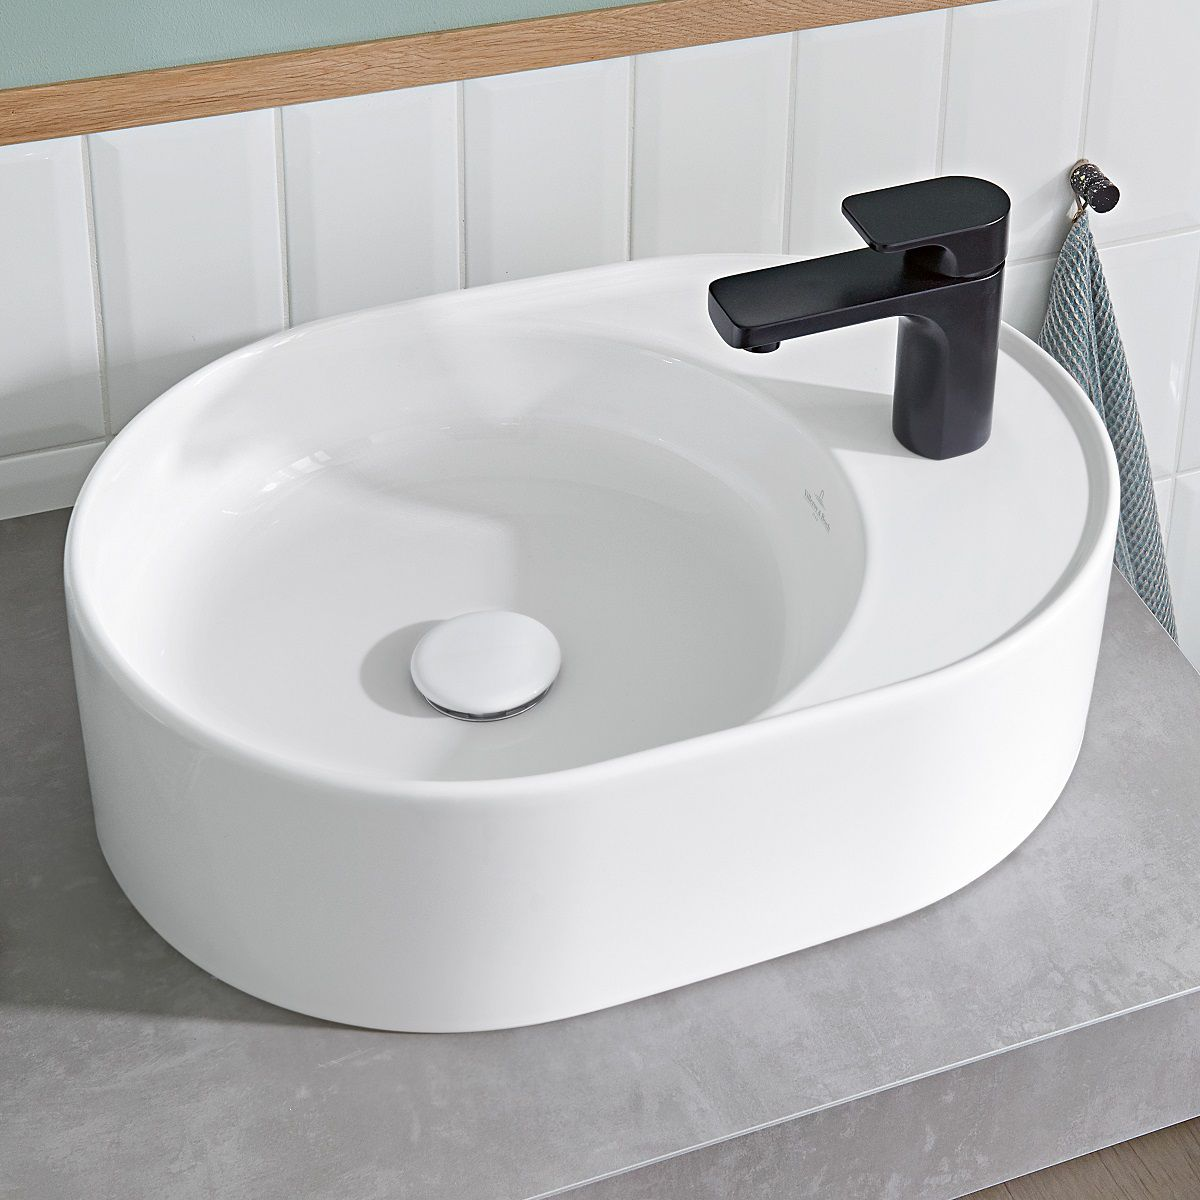 Villeroy & Boch Collaro Oval Countertop Basin with Tapledge